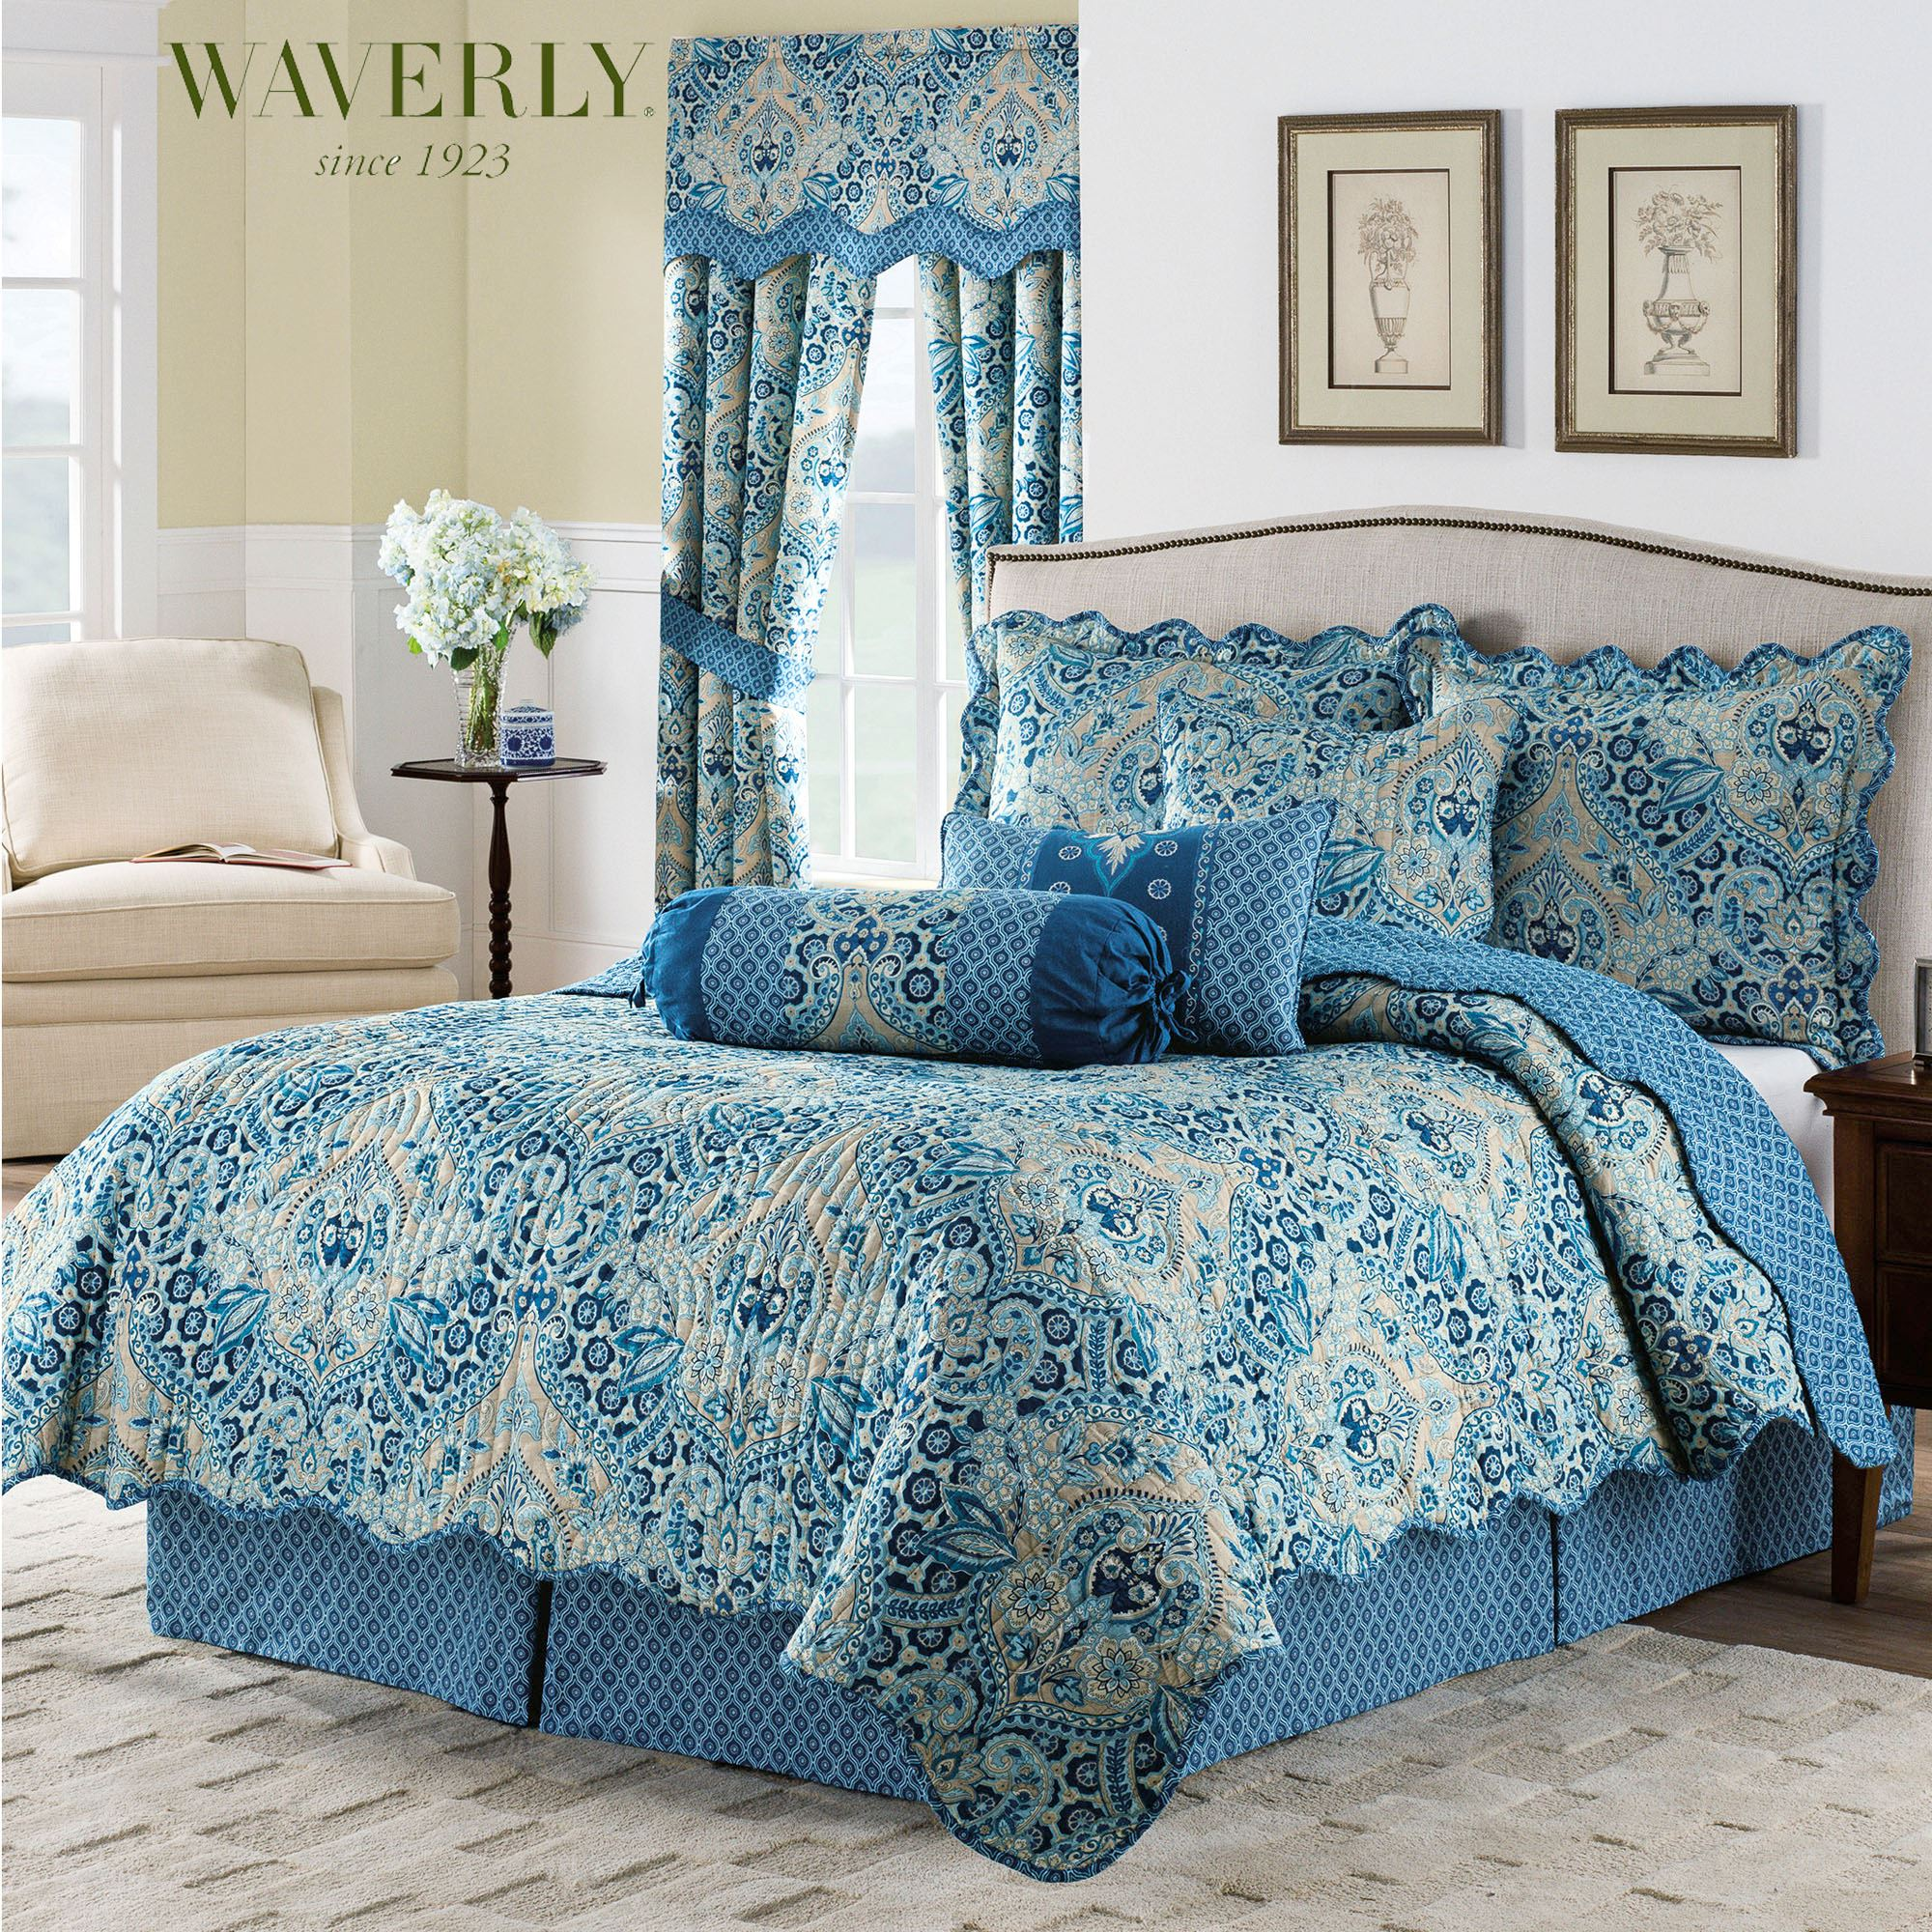 Moonlit Shadows Reversible Blue Quilt Set by Waverly : blue quilts bedding - Adamdwight.com